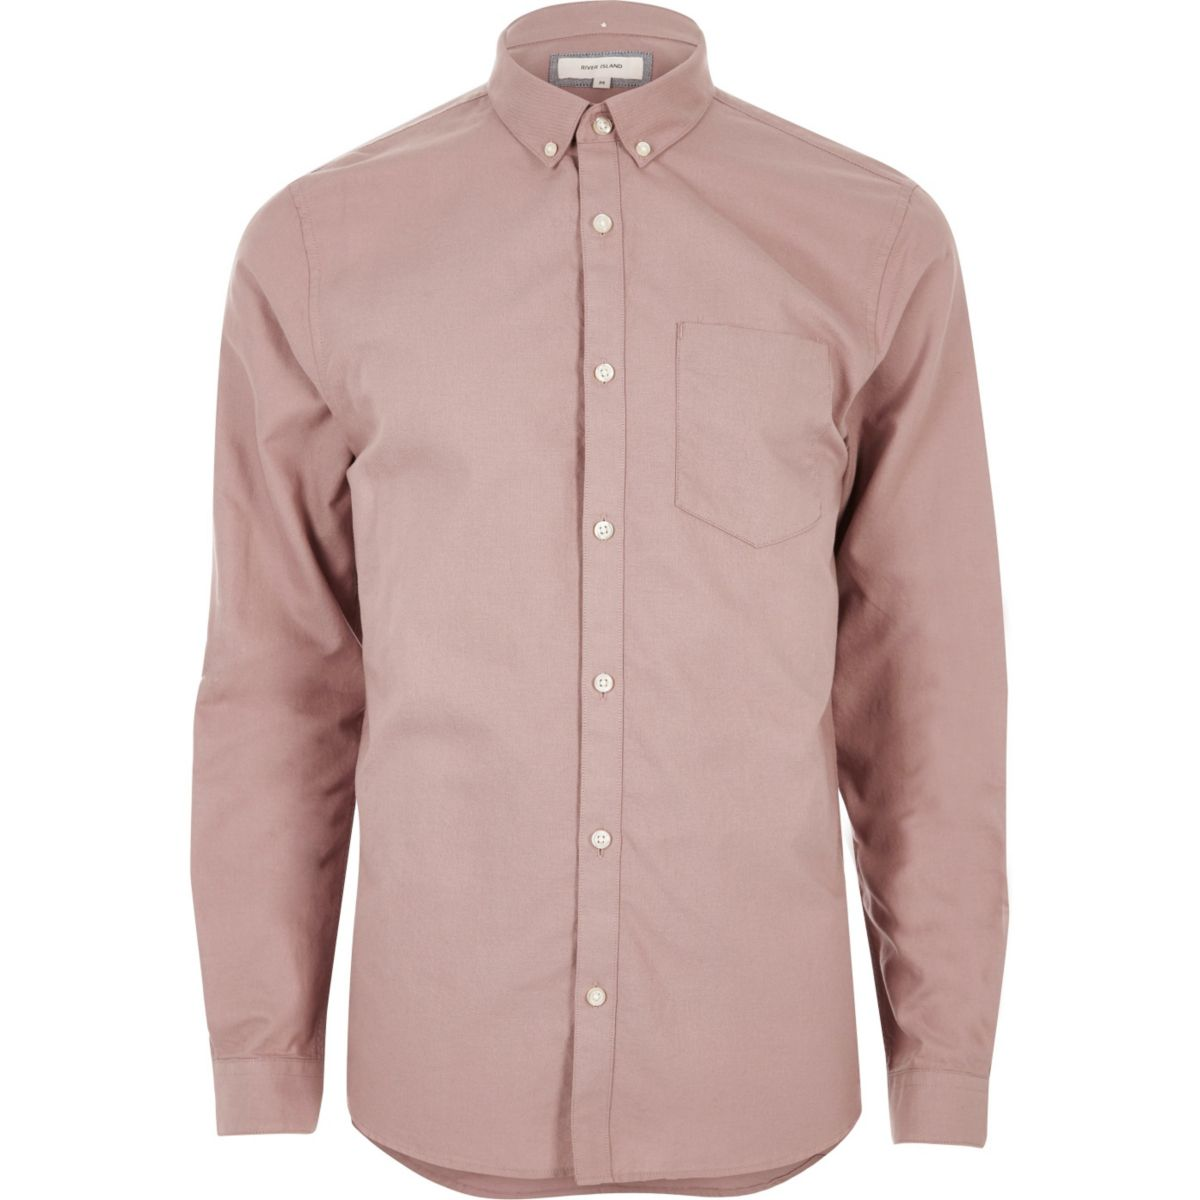 Dusty pink casual oxford shirt shirts sale men for Pink oxford shirt men